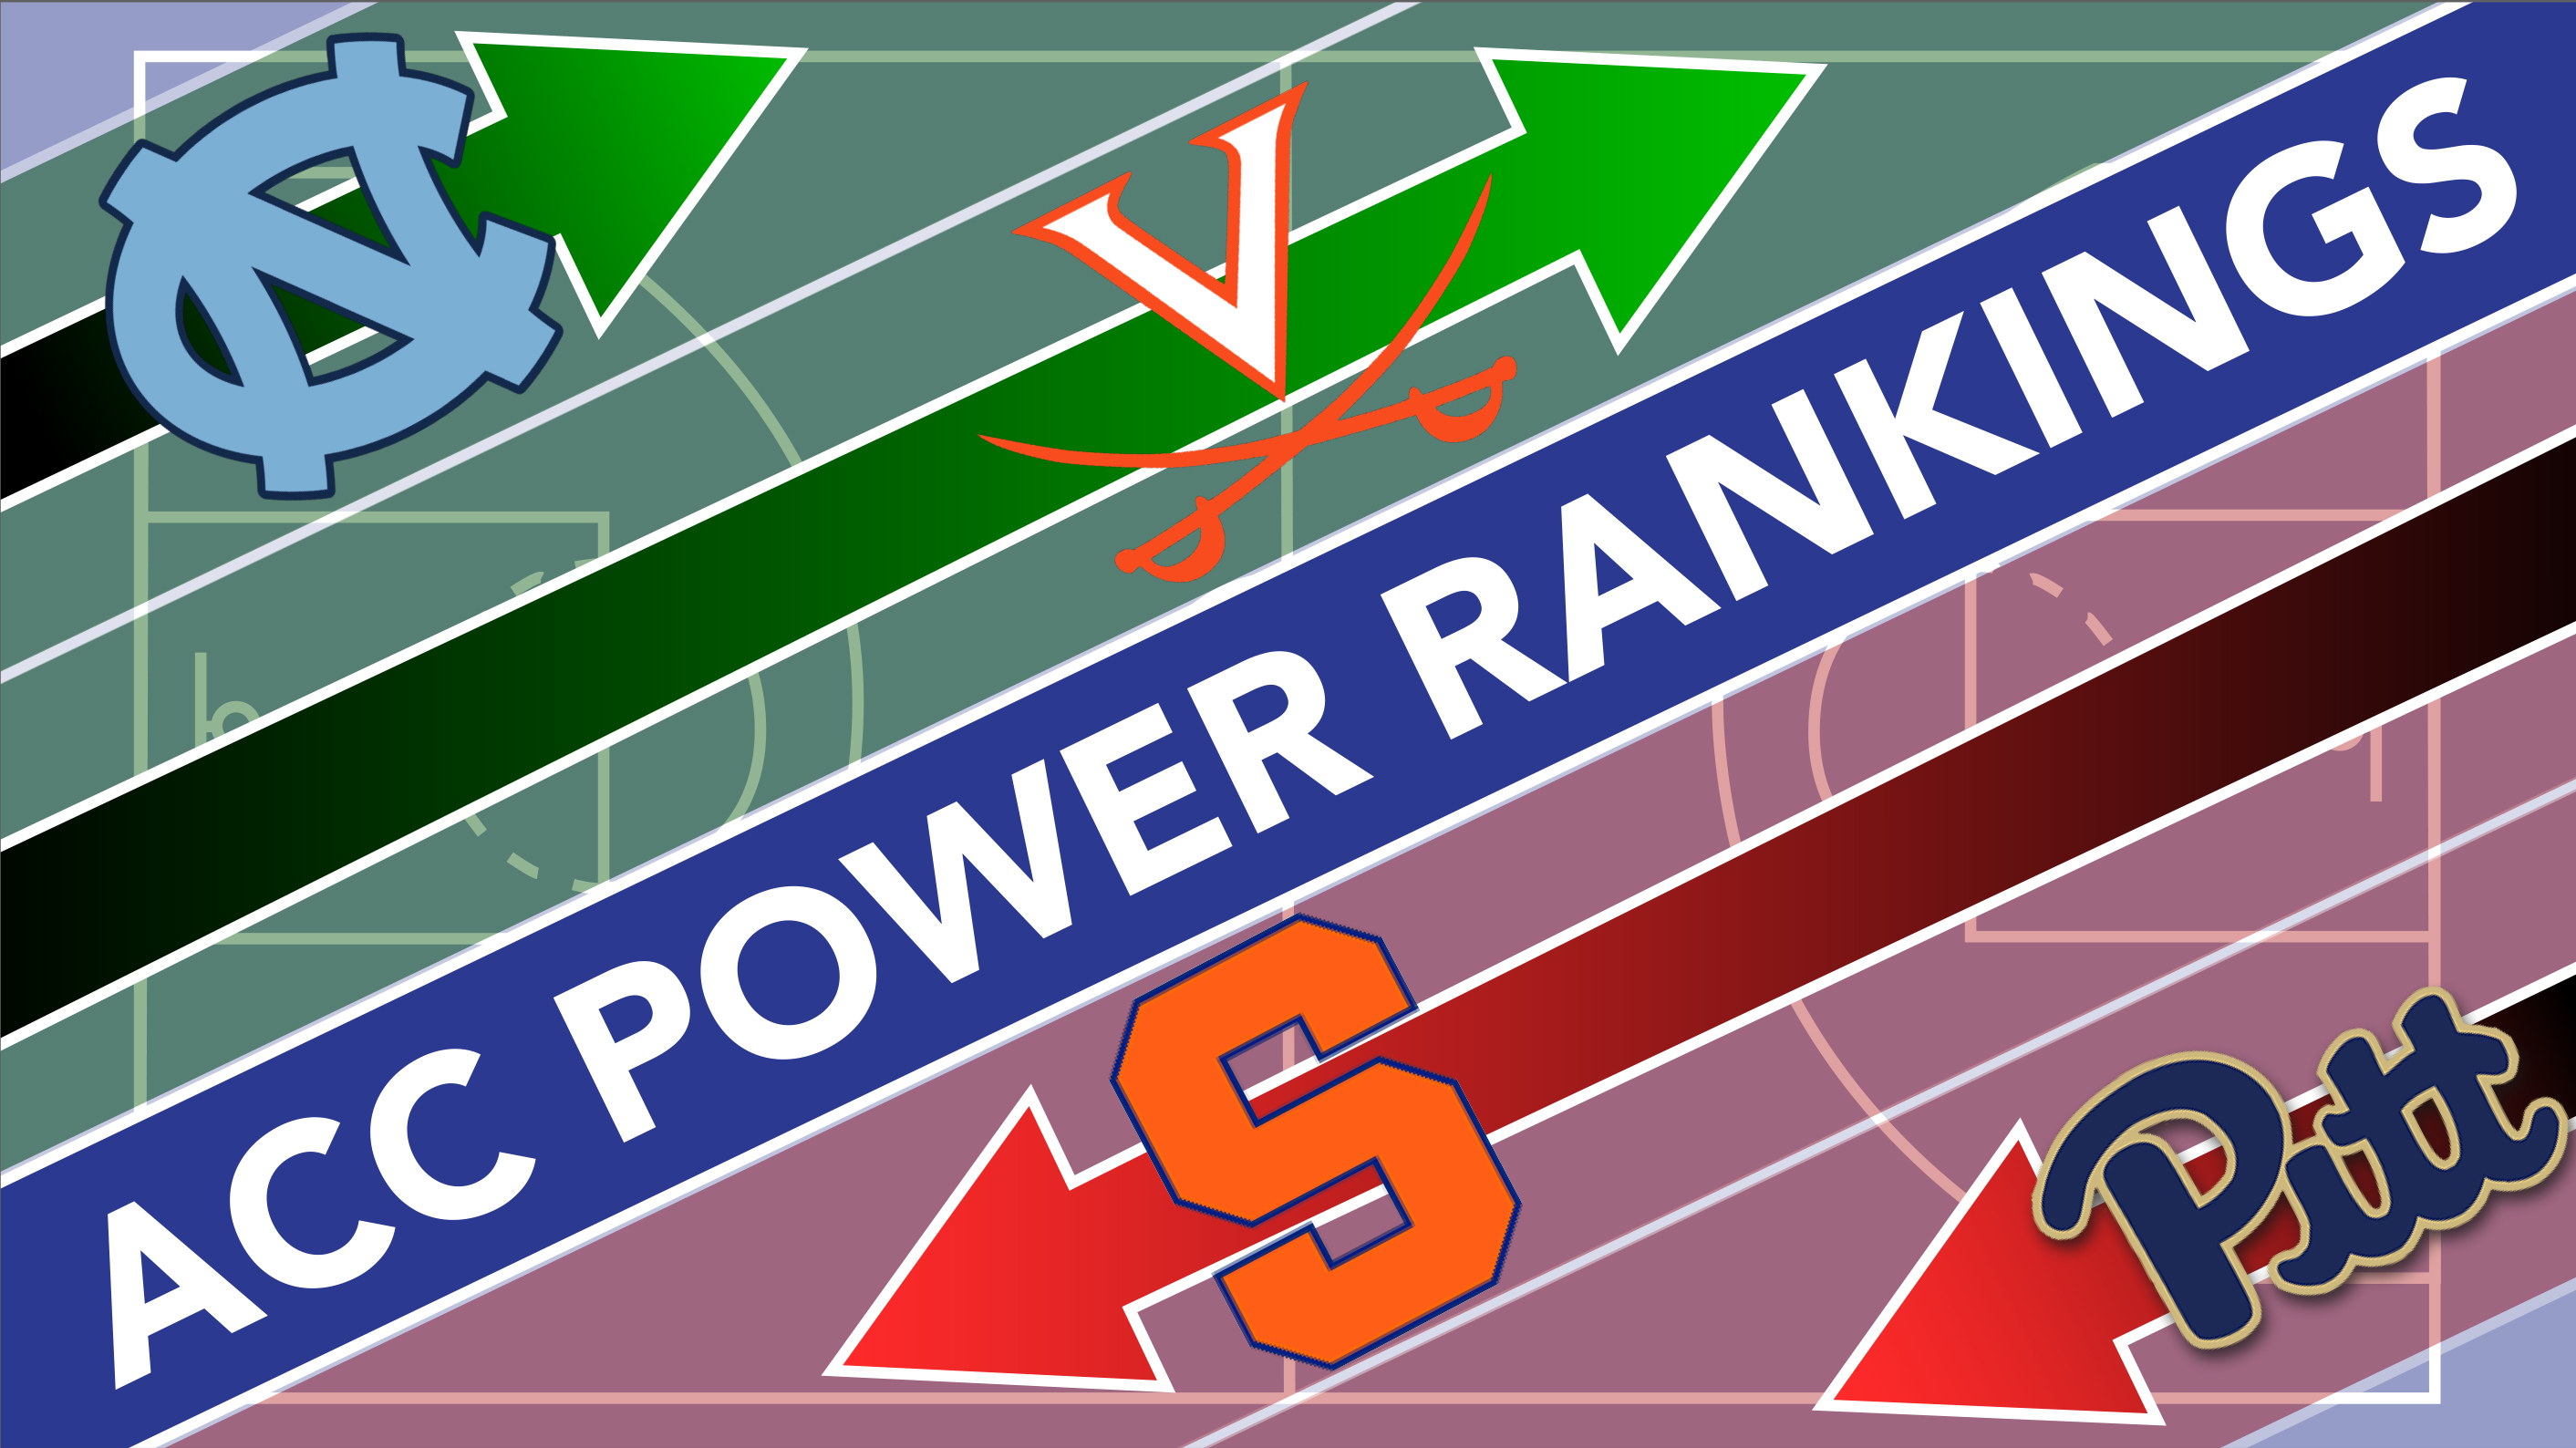 Virginia Emerges as Early Frontrunner in ACC Power Rankings